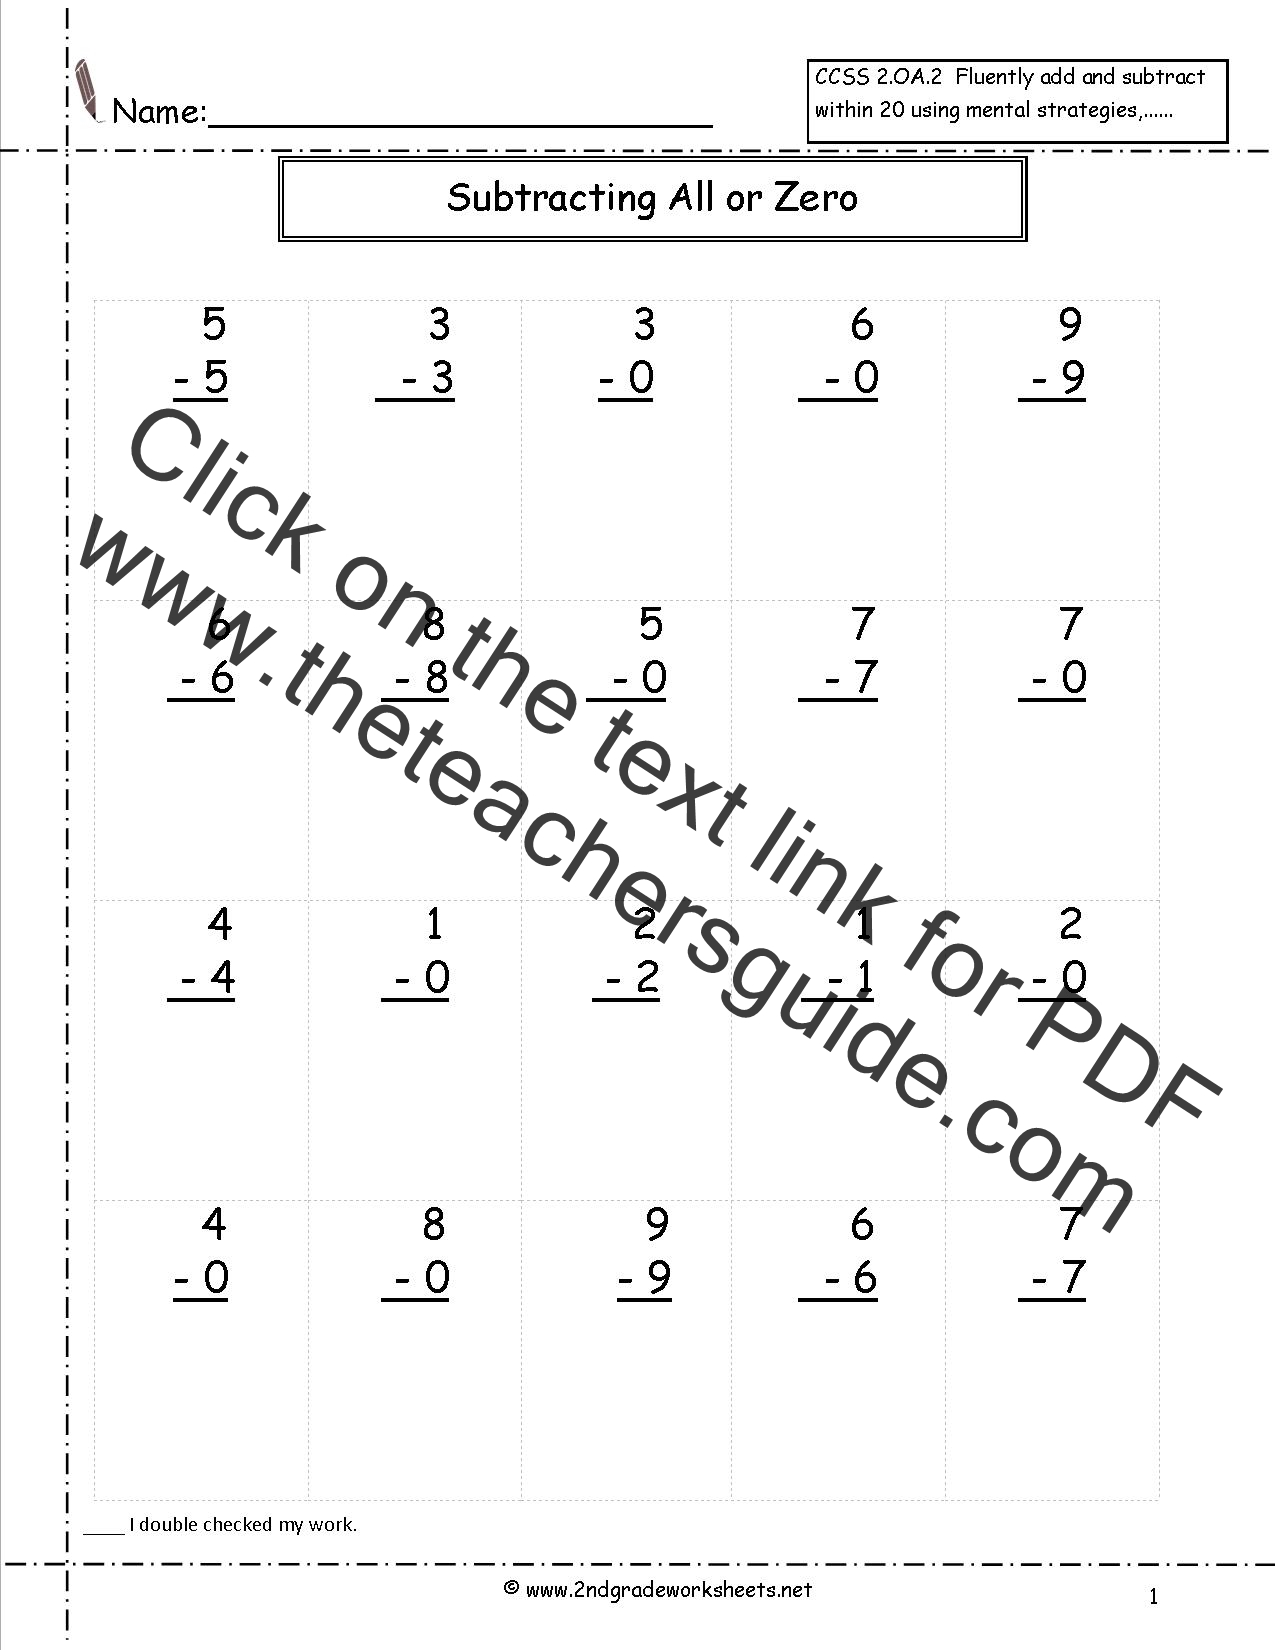 Subtracting Three Digit Numbers With Regrouping Worksheets – Adding and Subtracting Three Digit Numbers Worksheet